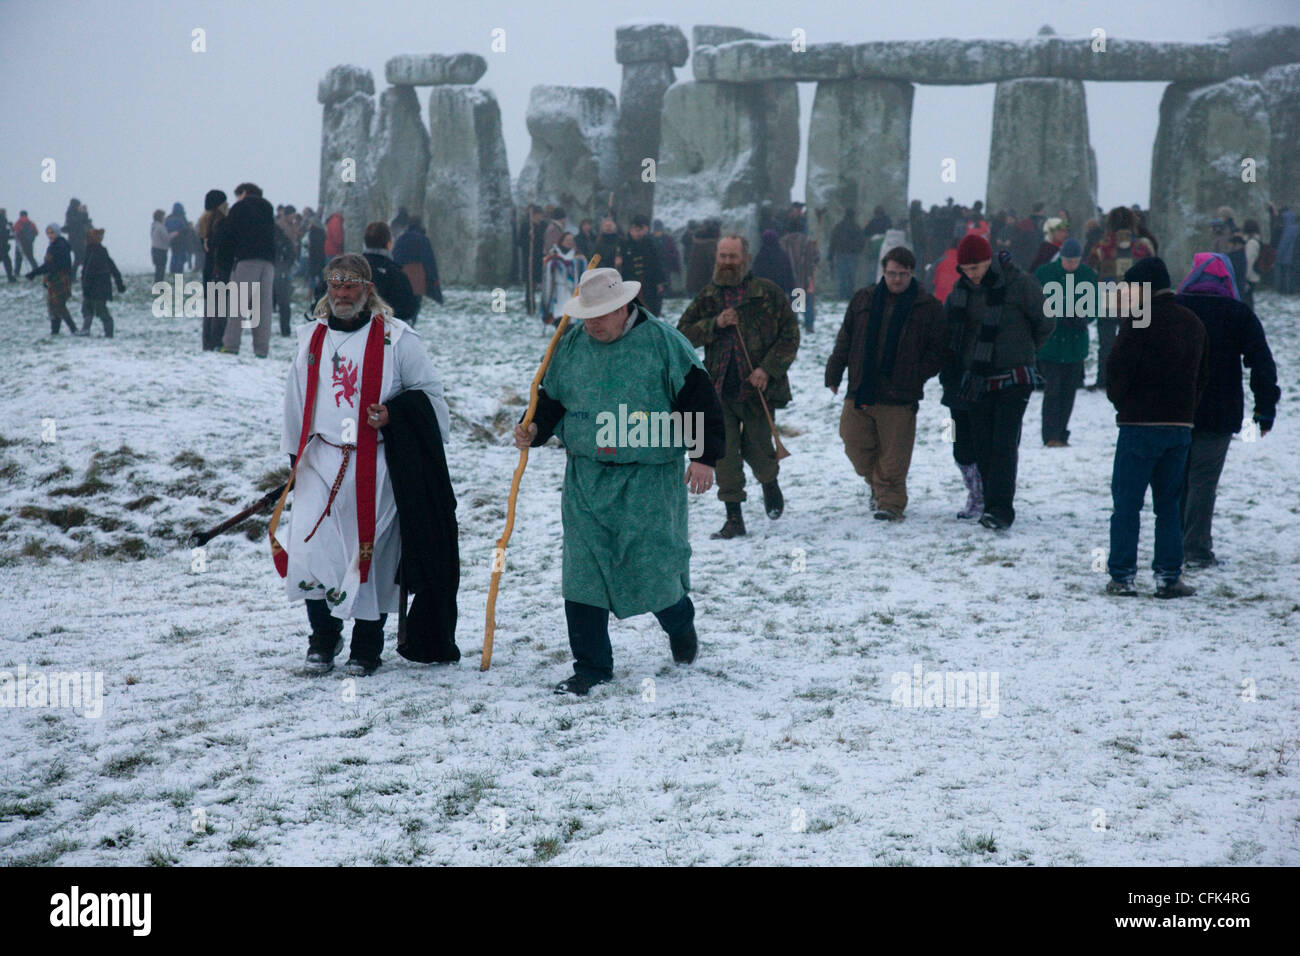 Druid ceremony during the Winter Solstice at Stonehenge, Wiltshire - Stock Image